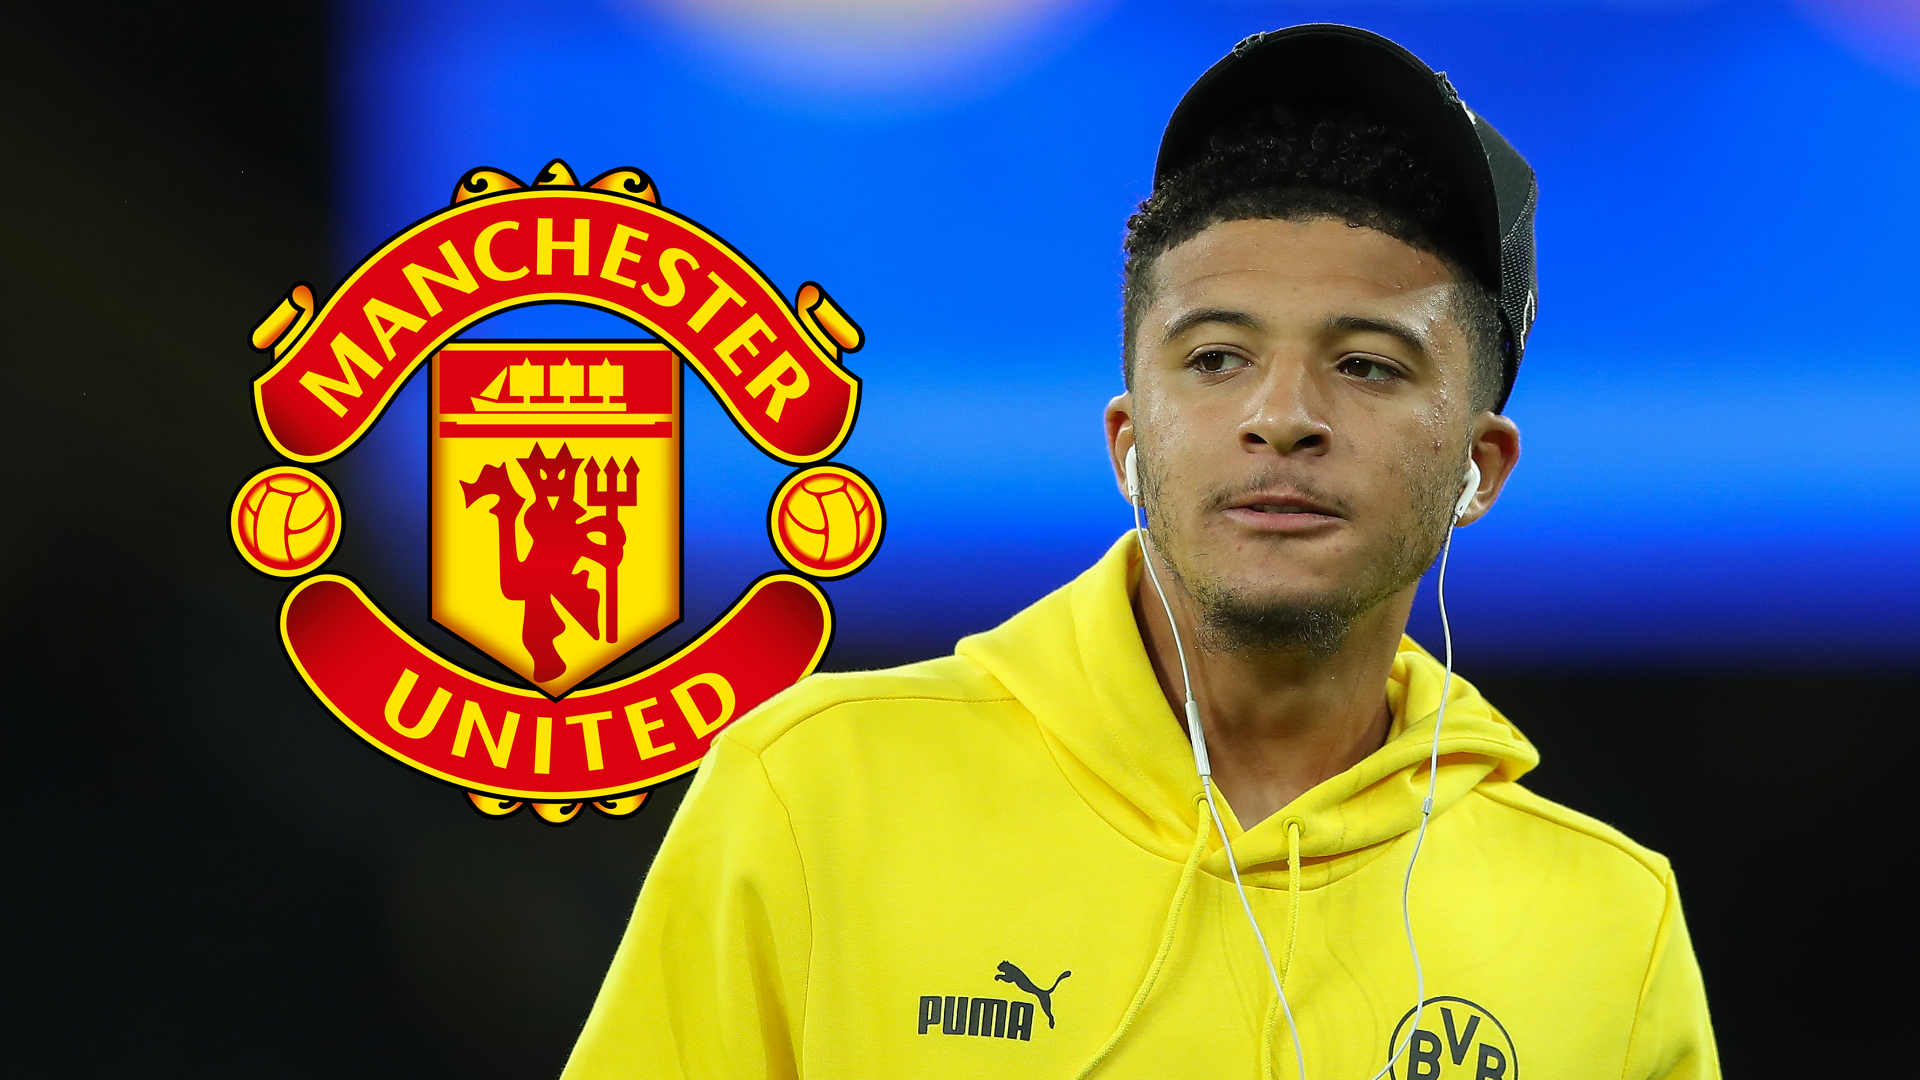 Chelsea fans react as Sancho looks set to leave Dortmund